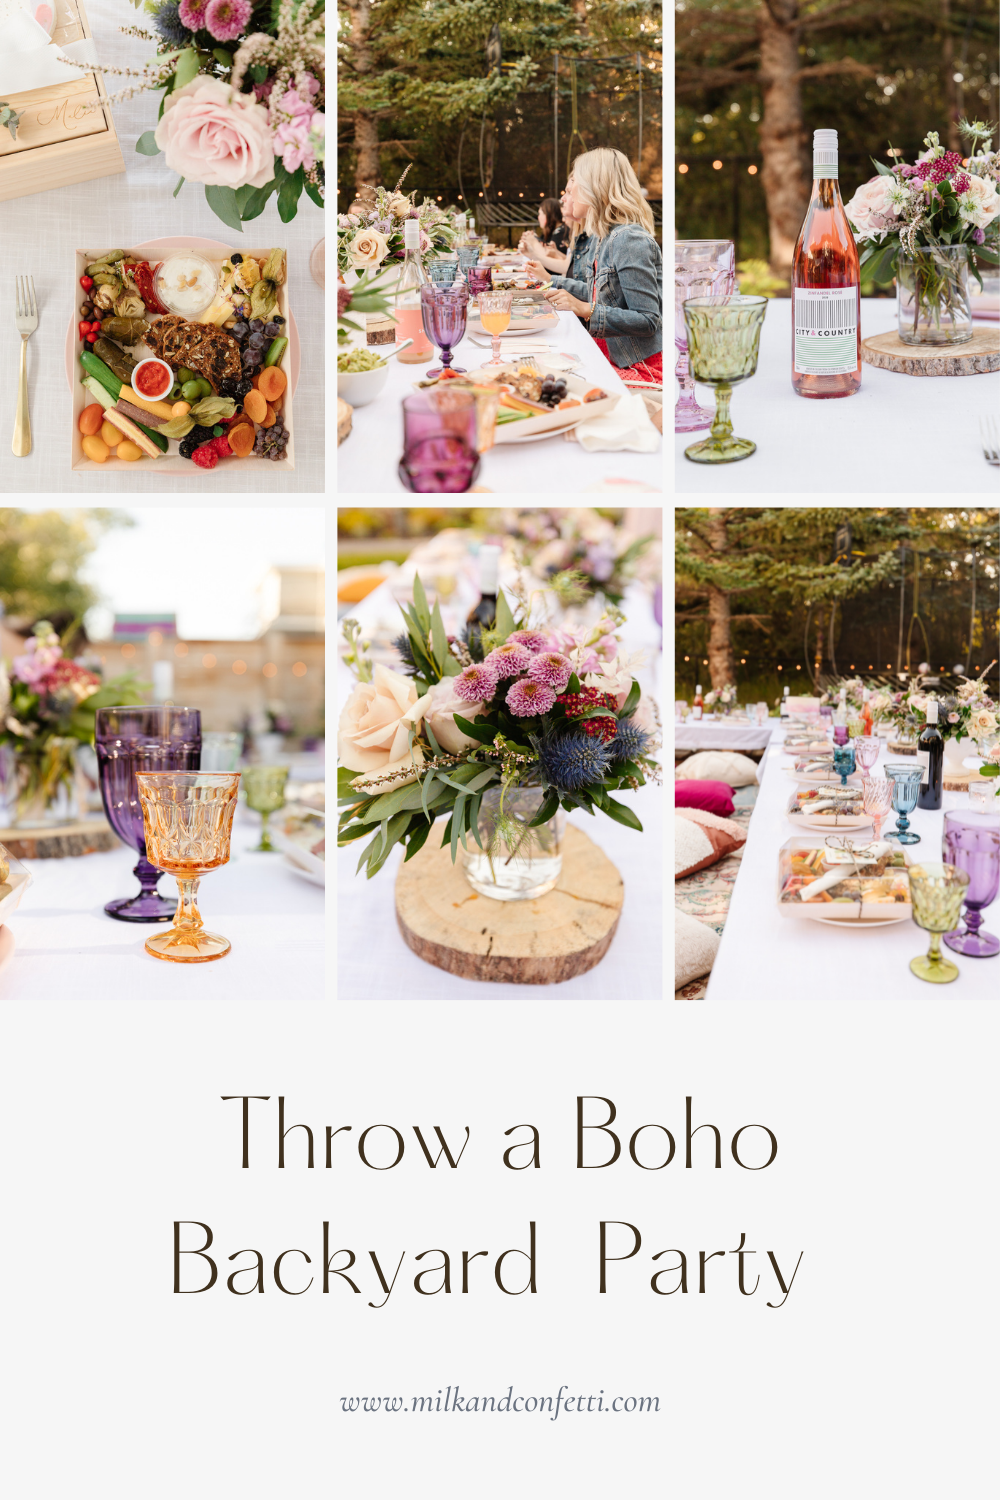 An evening backyard boho garden party with gorgeous flowers, velvet throw pillows, vintage rugs, charcuterie wine, twinkle lights, coloured glasses, personalized gift boxes, boho decor and all your best girlfriends.